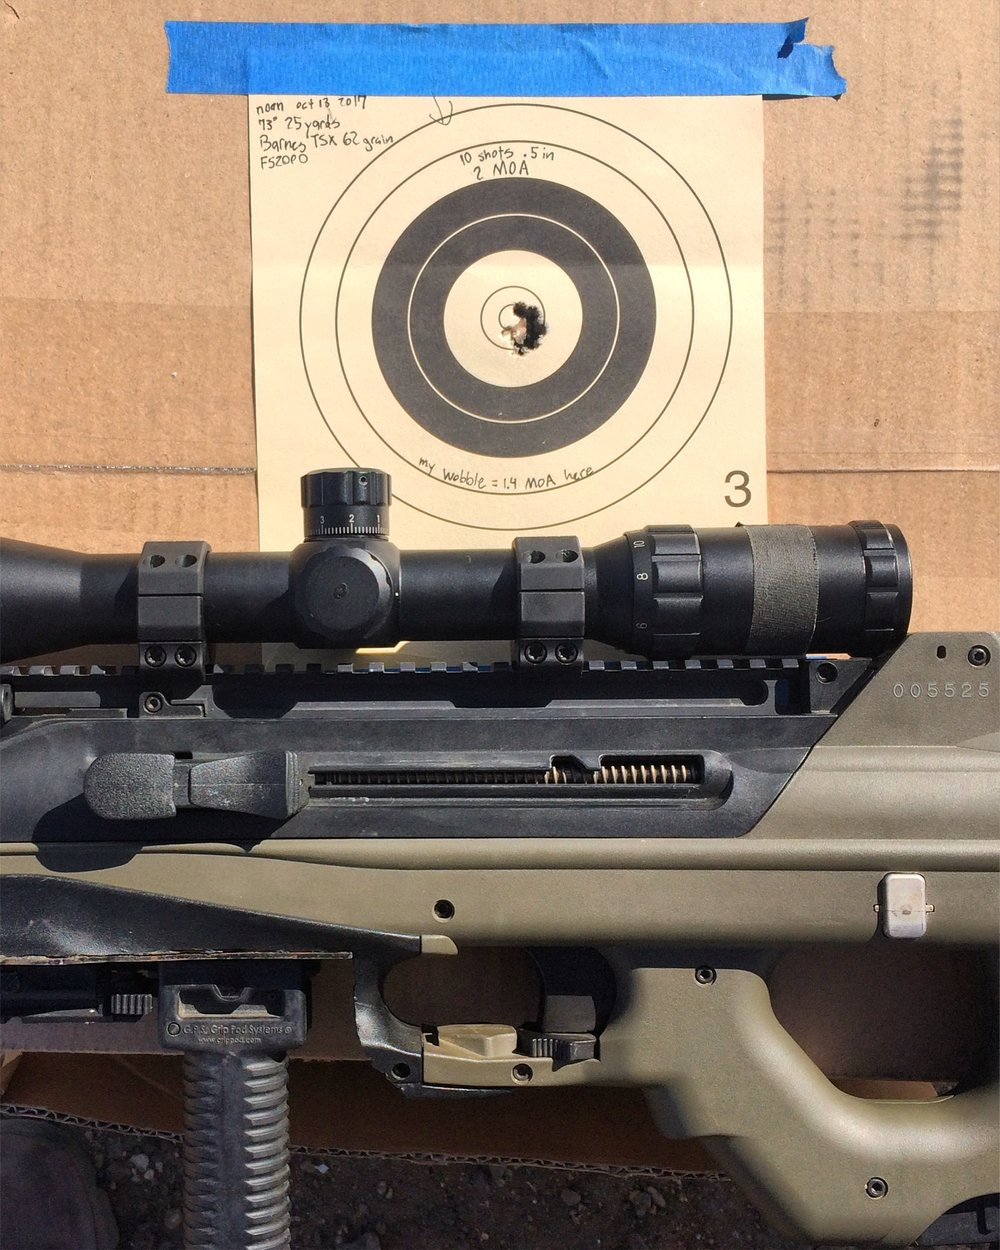 Two years into the FS2000 accurization project and we've plateaued at about 1.8 MOA. Not bad.